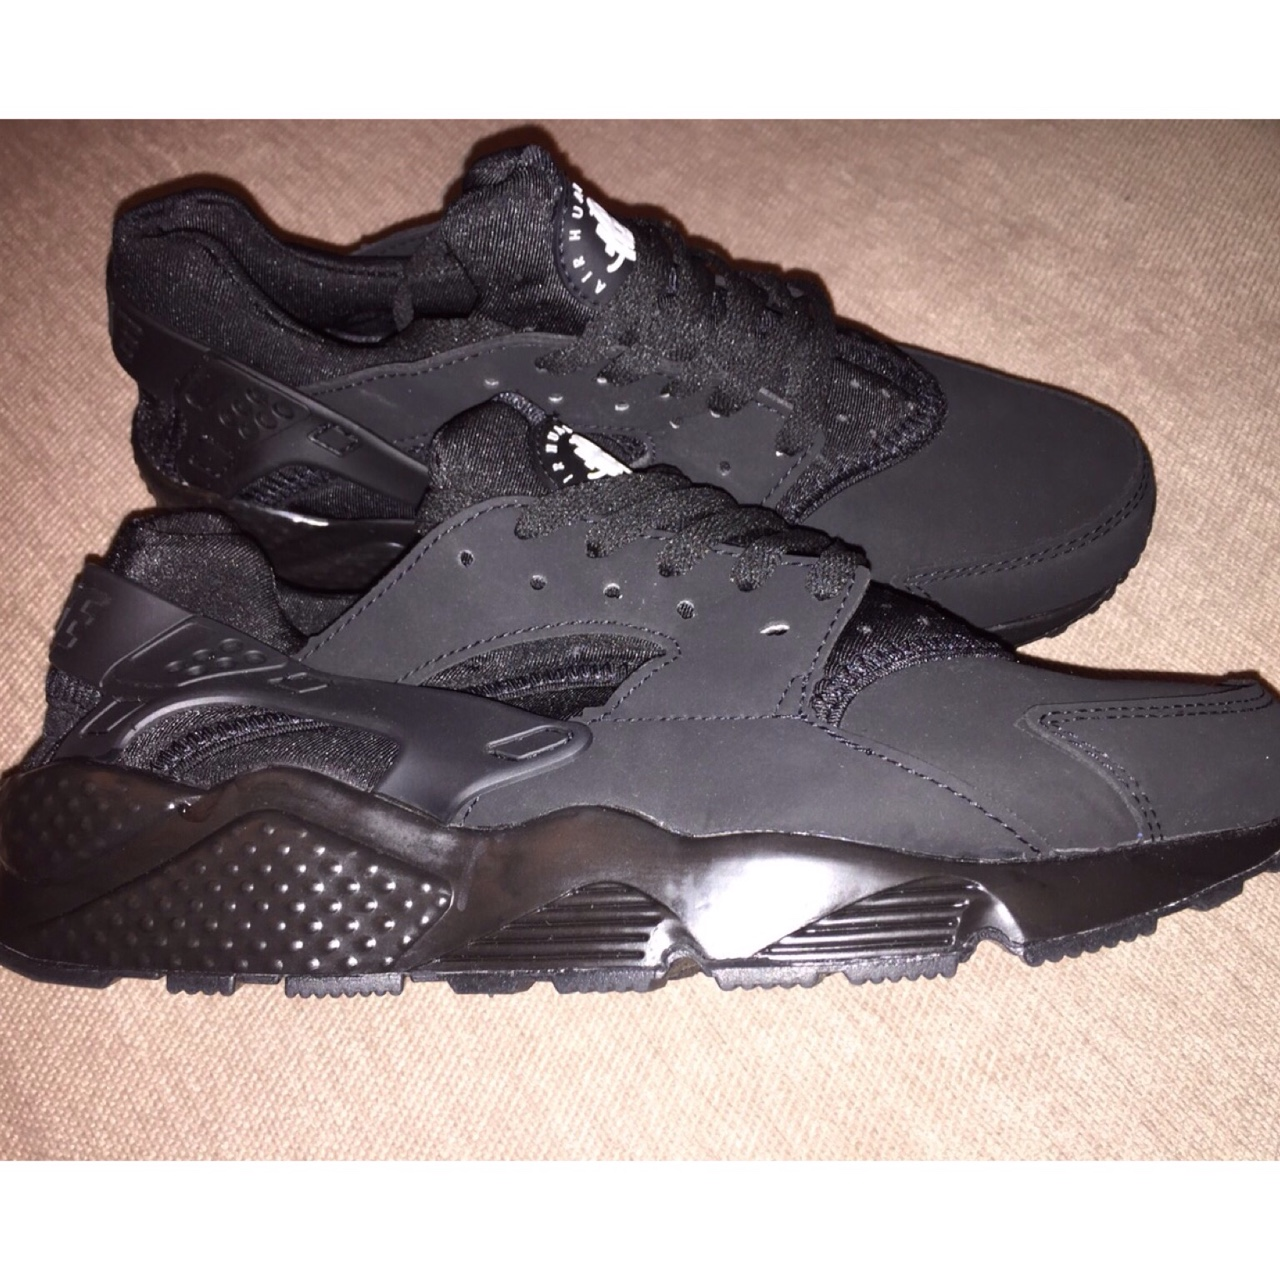 Nike Air Huarache Triple Black Fake